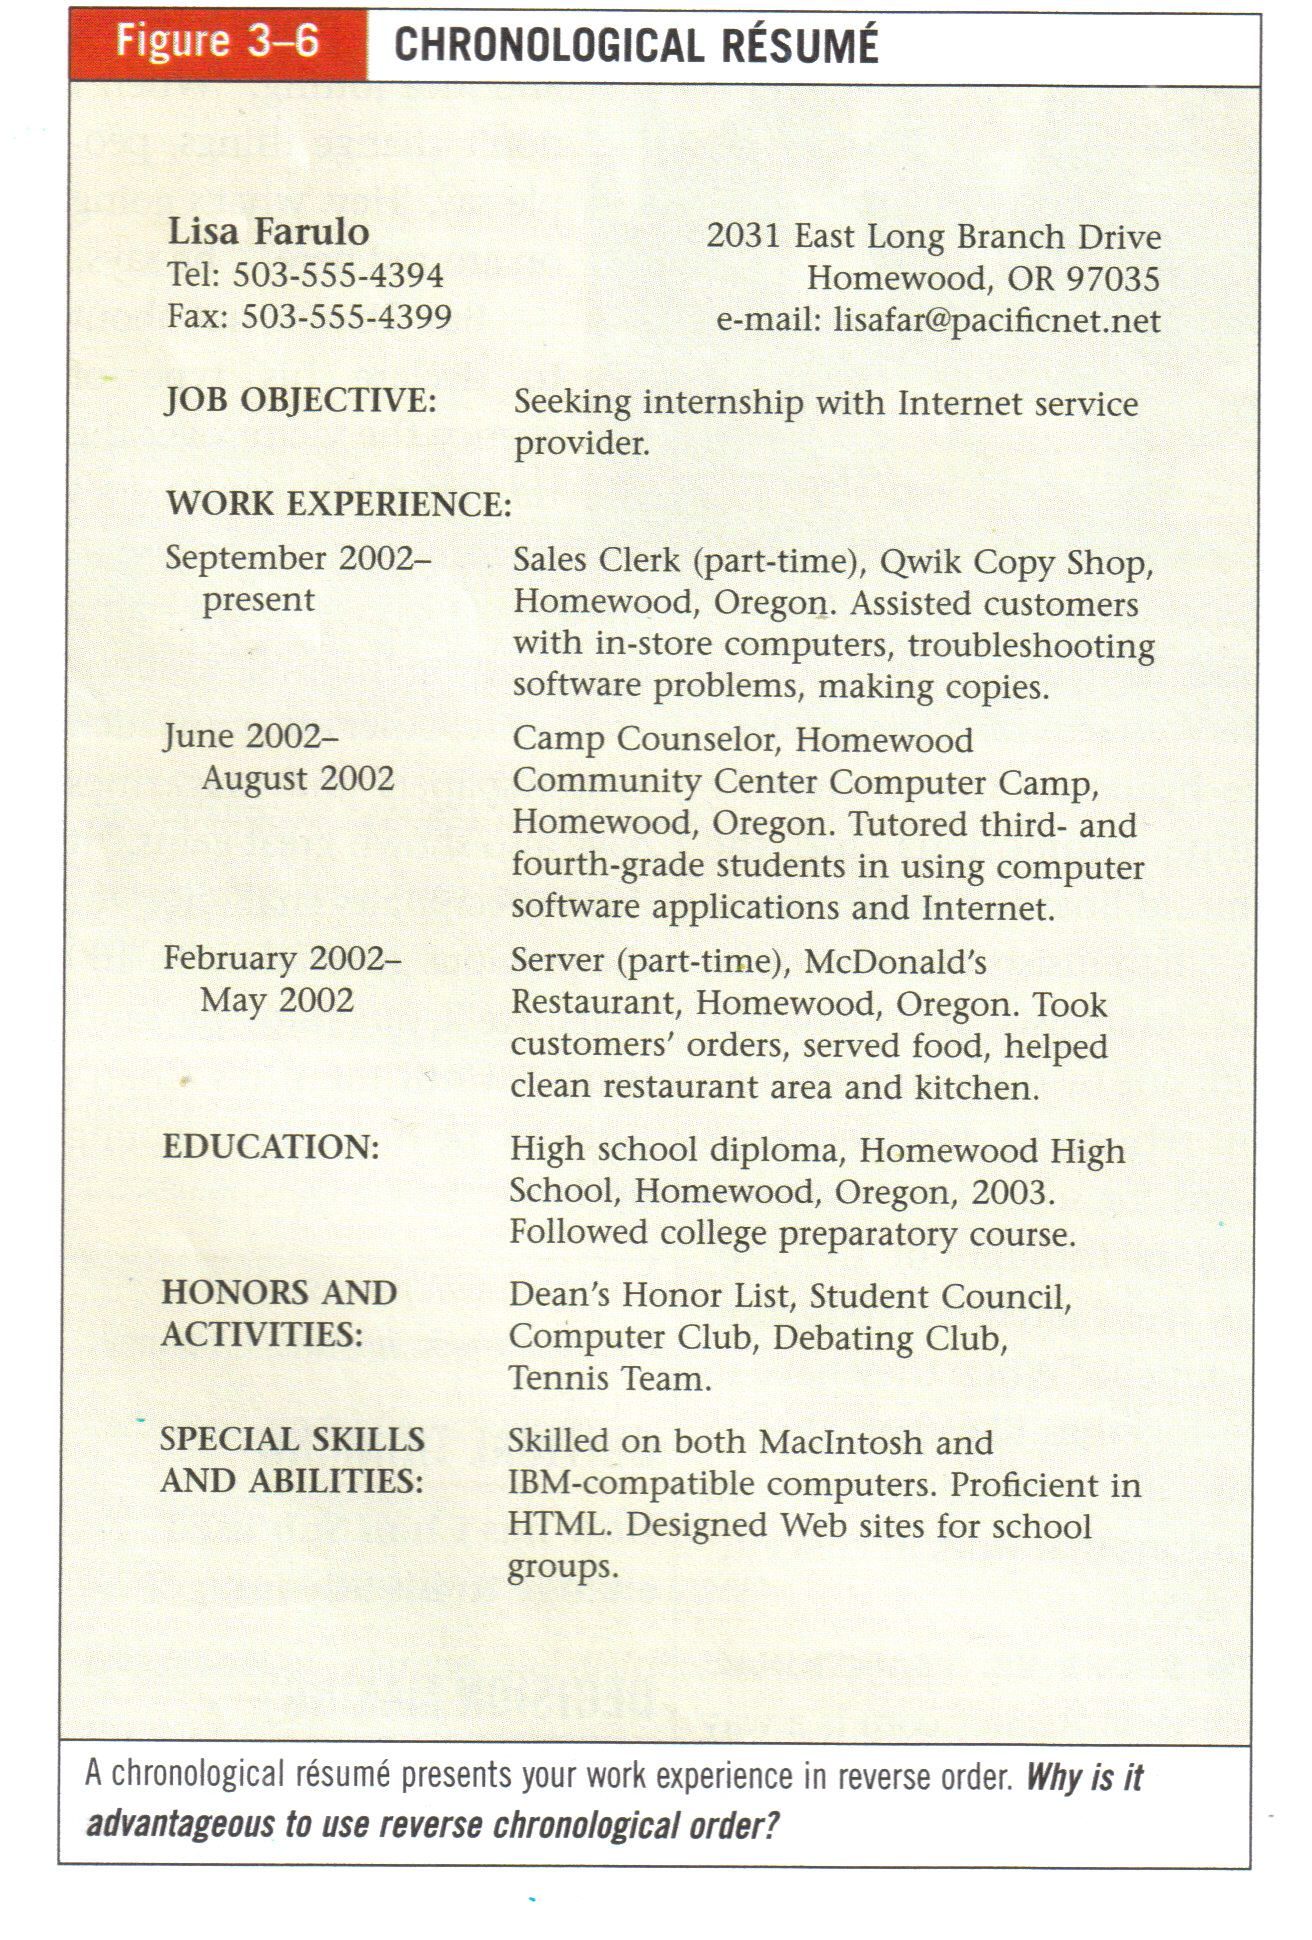 Example Resume Sample Chronological Resume  Career Development Teaching Ideas